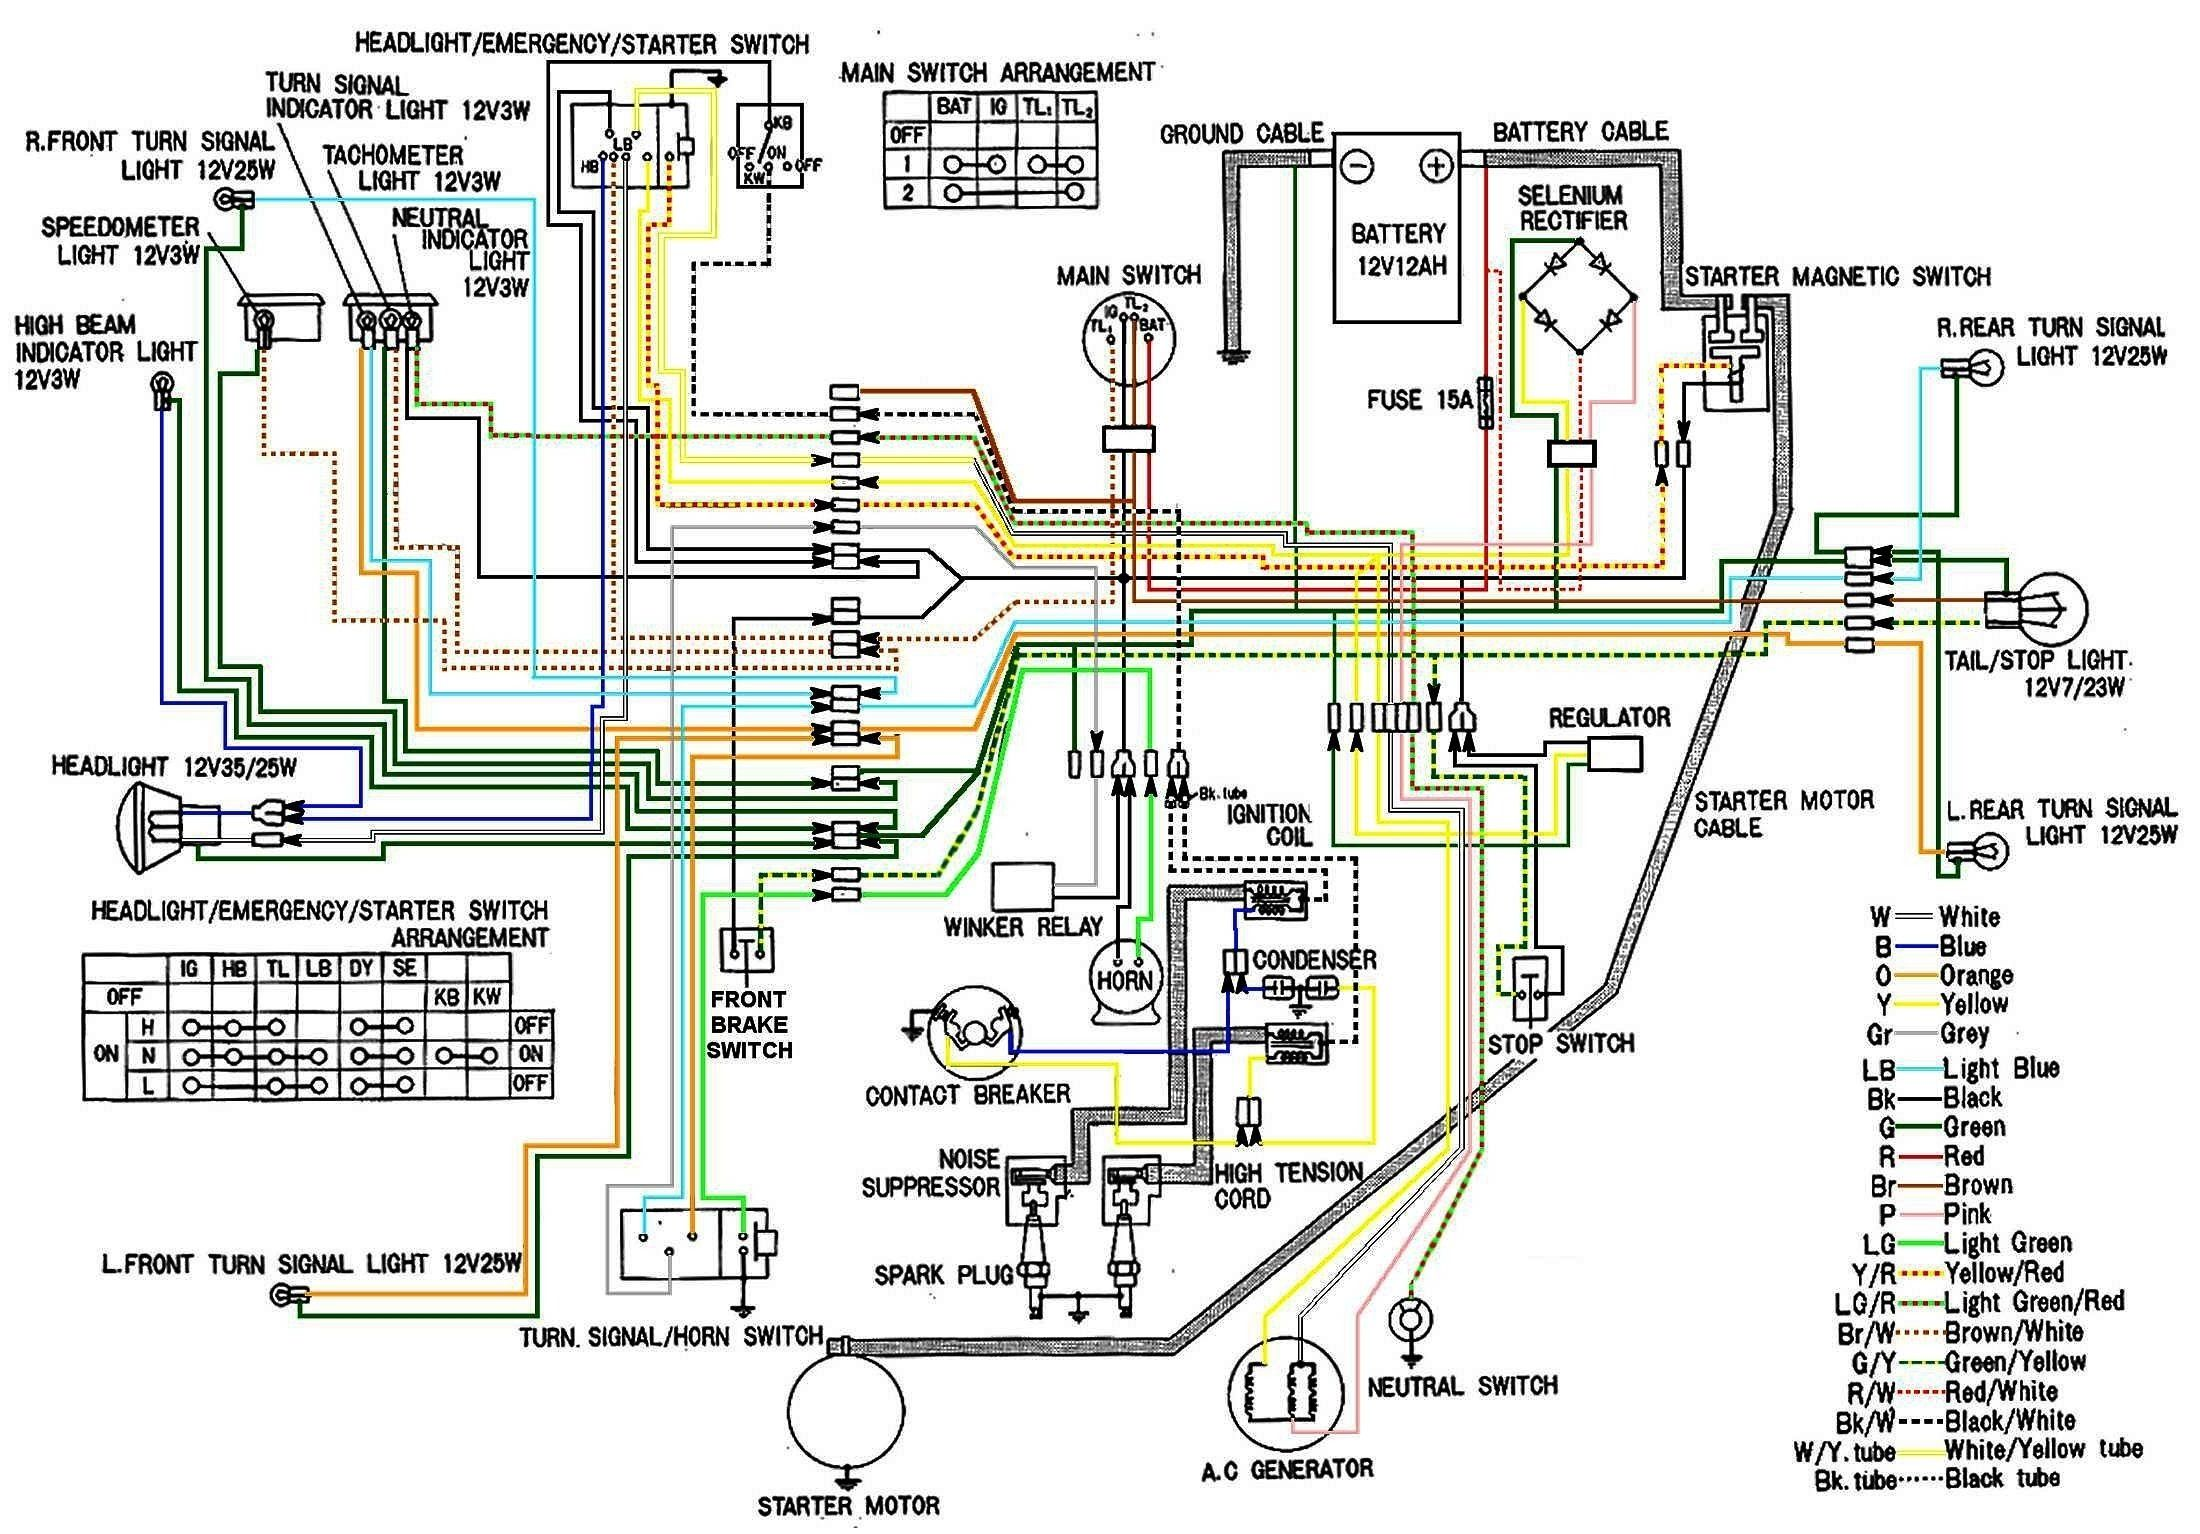 Honda Motorcycle Wiring Diagram Xl100 Plete Vole Skeleton Cb750 93 Best Library Complete Electrical Of Site 1974